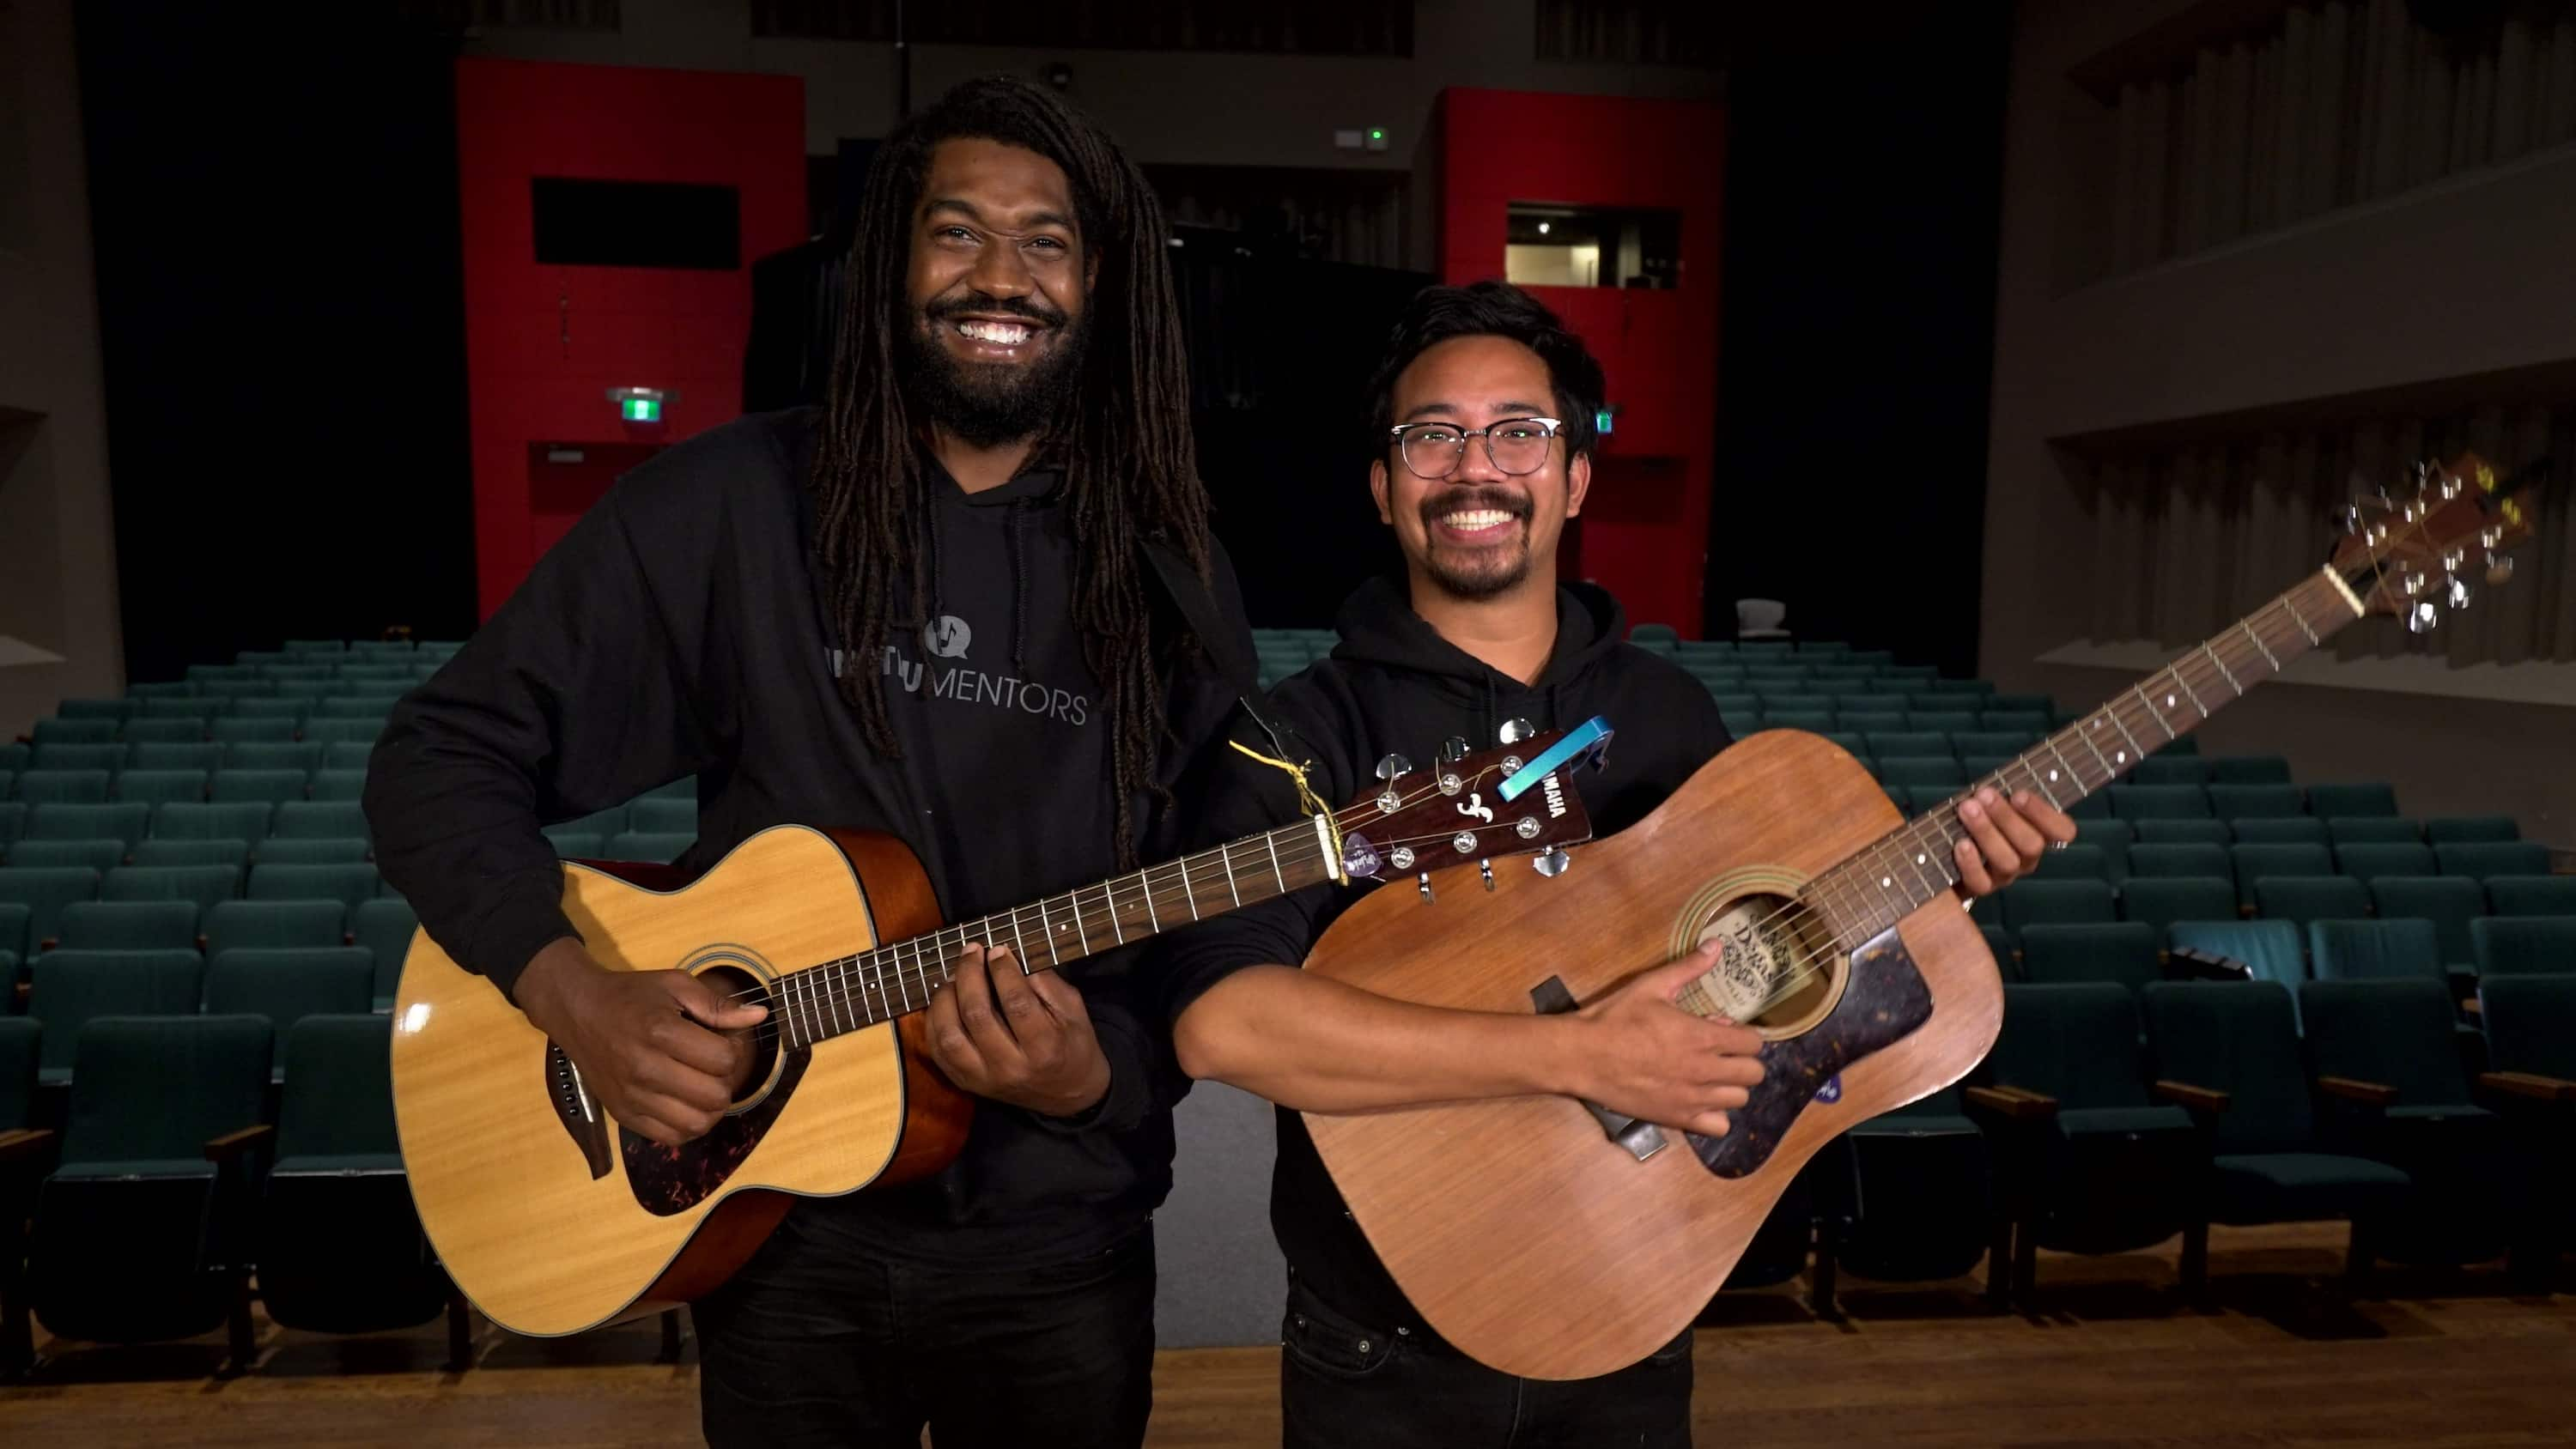 'Instrumentors' empower youth through music and mentorship